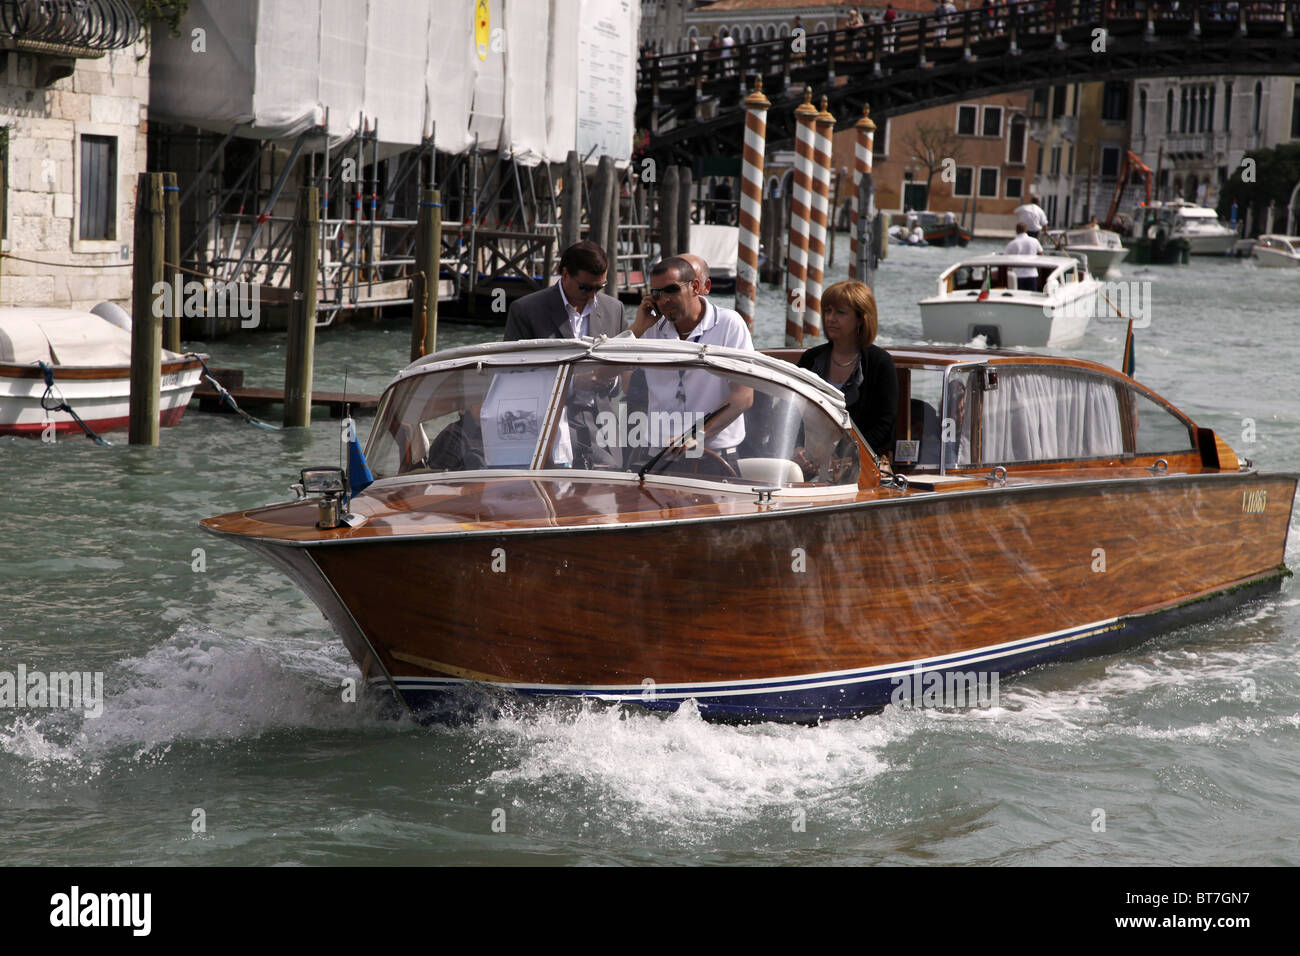 POLISHED WOODEN SPEED BOAT VENICE ITALY VENICE ITALY VENICE ITALY 10 September 2010 - Stock Image